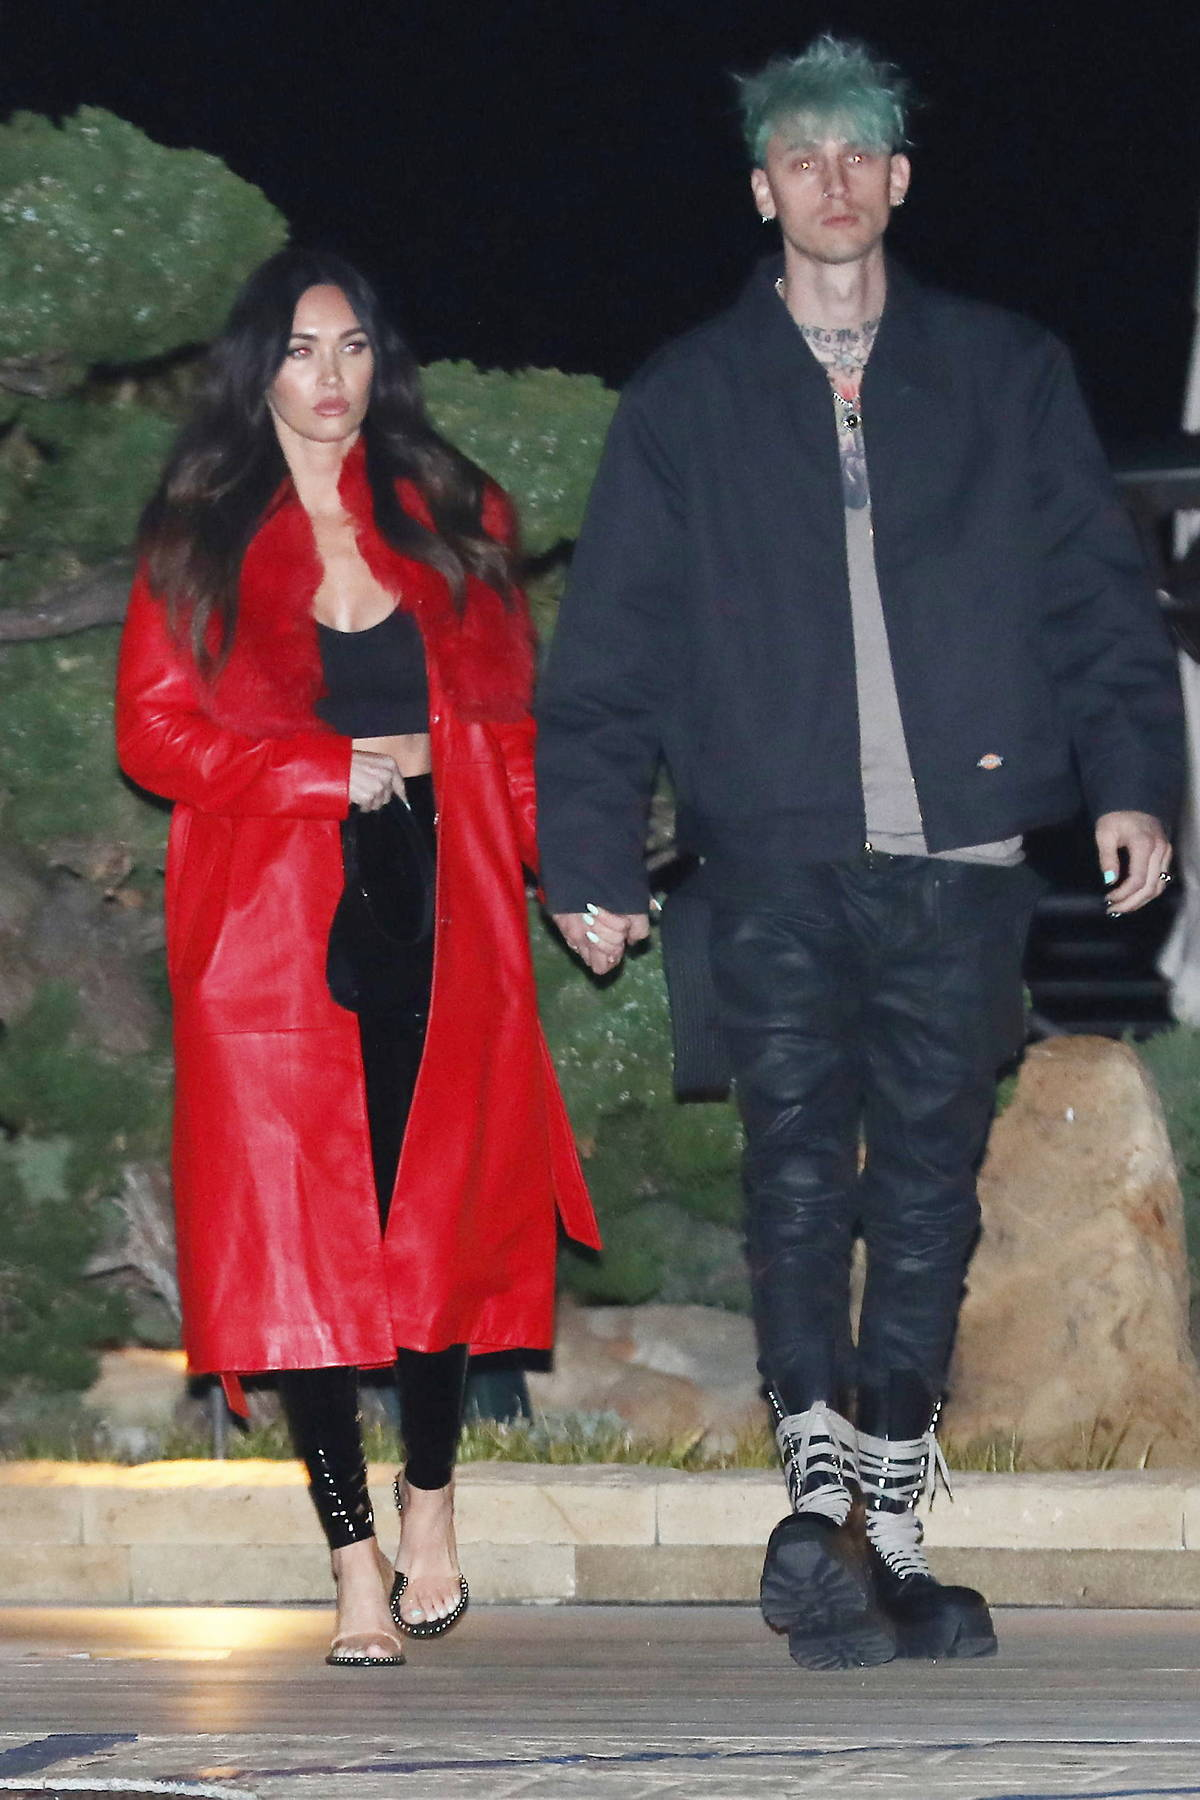 Megan Fox looks stunning a fur-lined red coat during a date night with Machine Gun Kelly at Nobu in Malibu, California